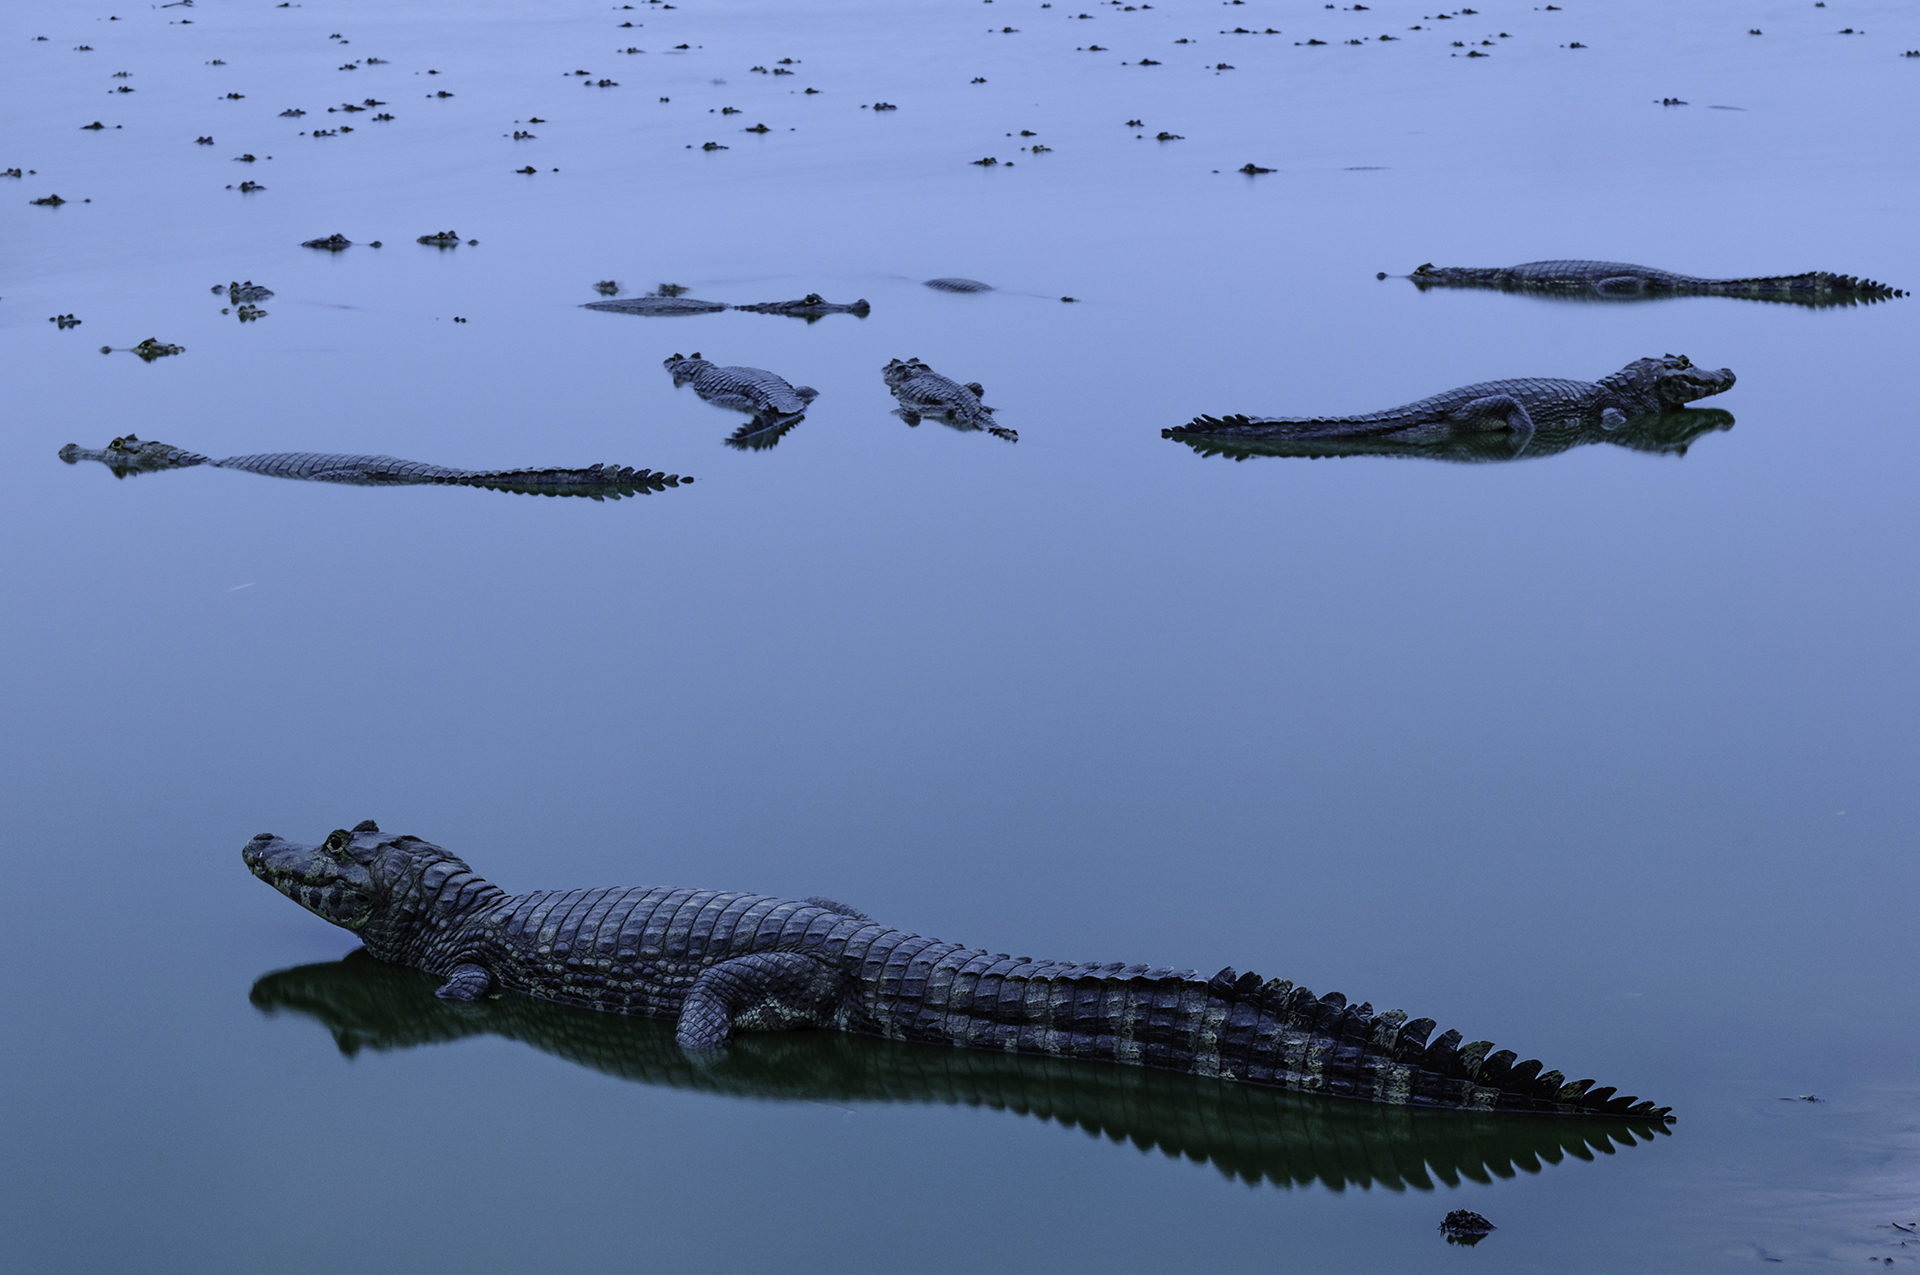 Dozens of alligators in Brazil's Pantanal wetland area.